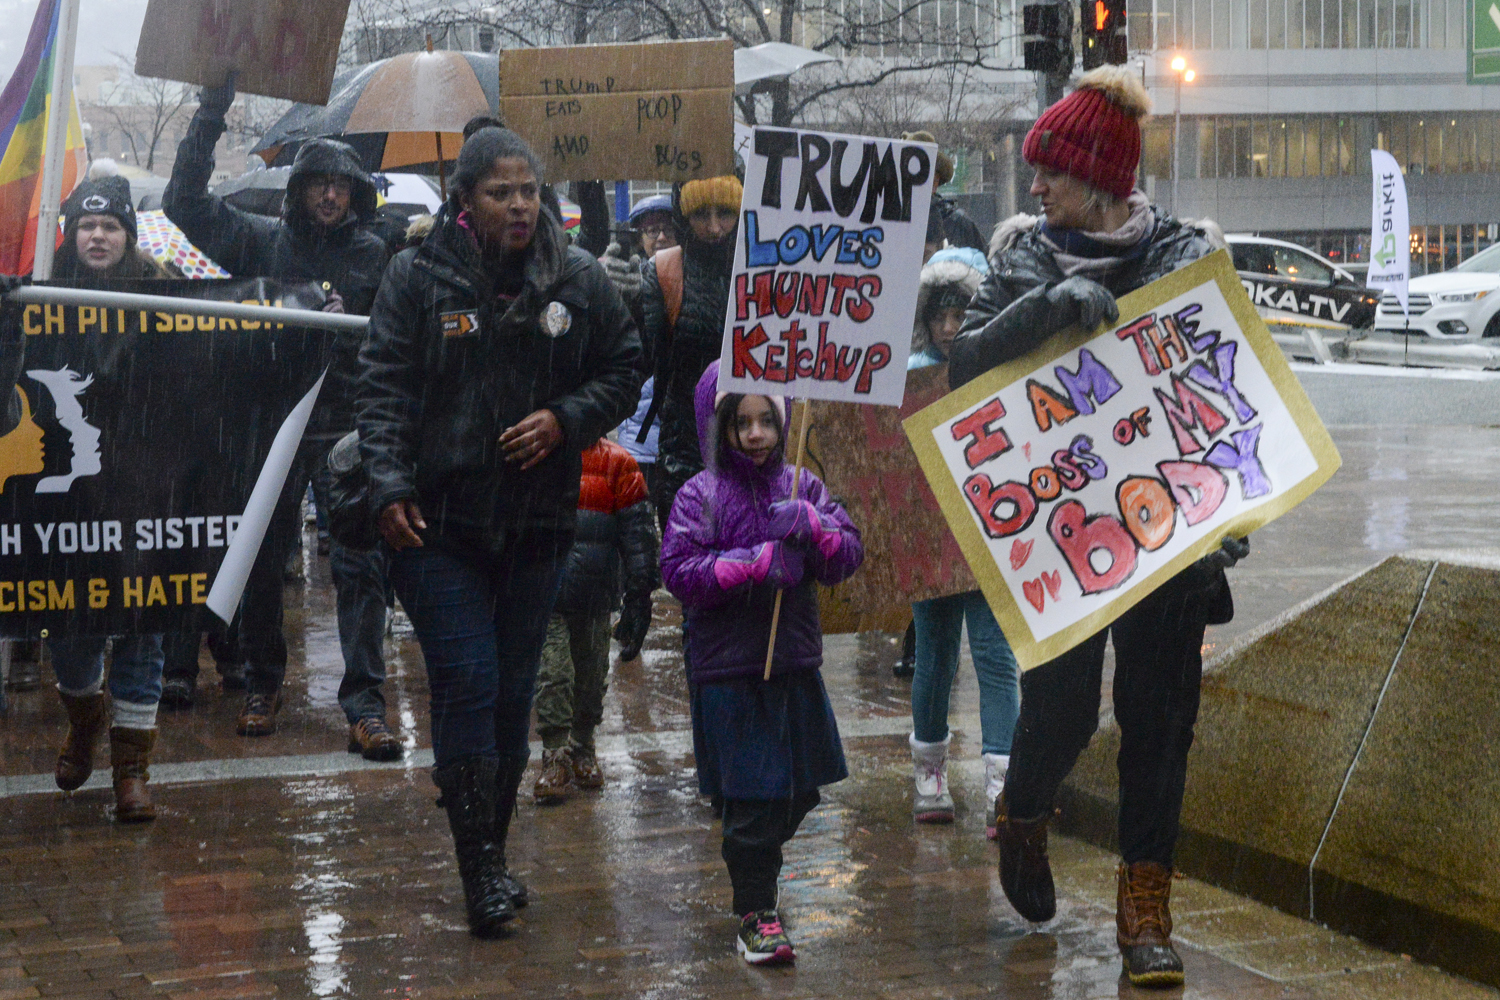 Demonstrators at the fourth annual Pittsburgh Women's March walk through the rain on Saturday.